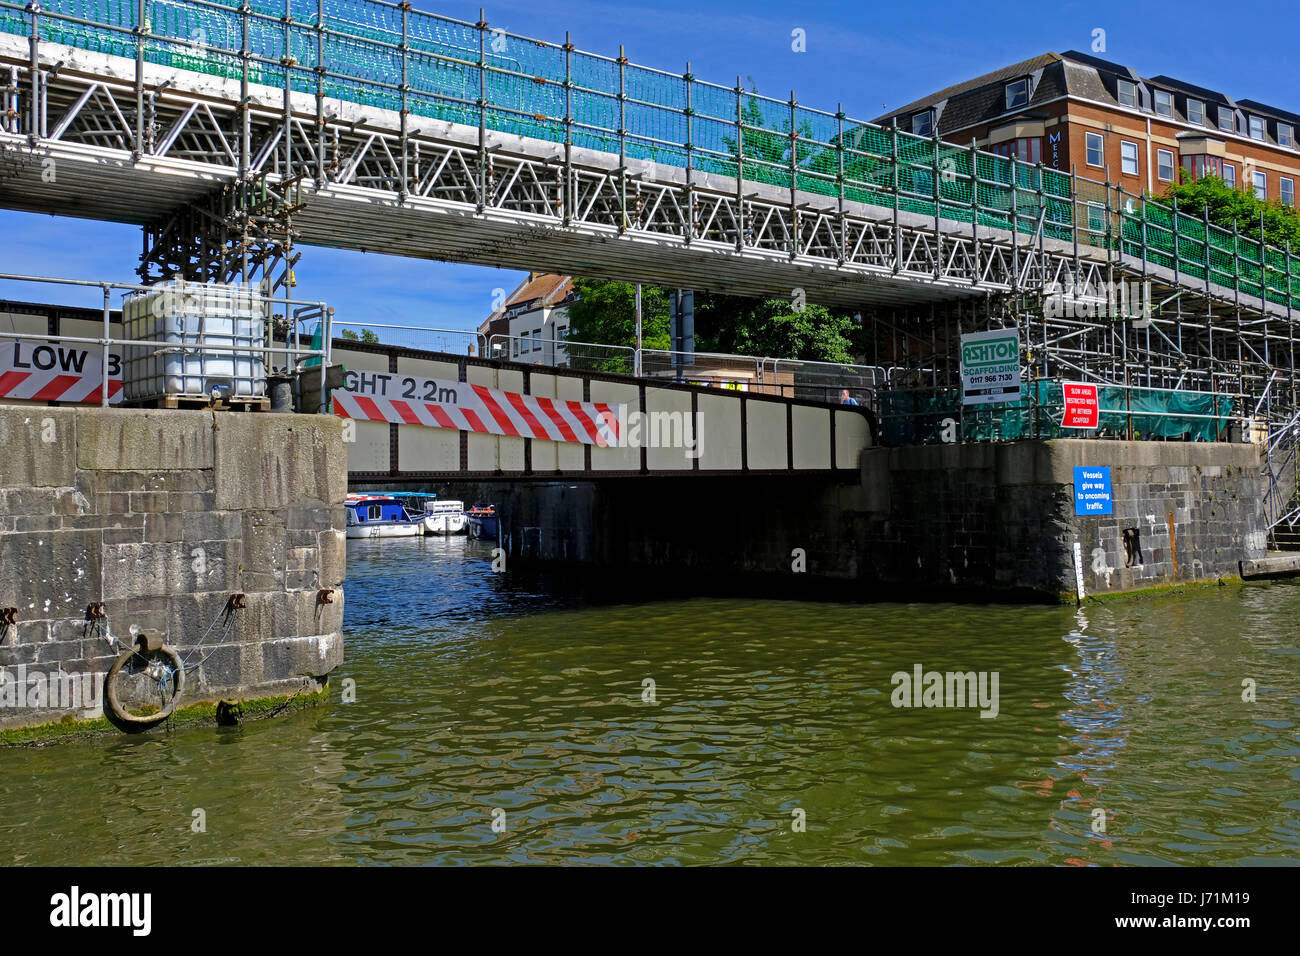 Bristol, UK. 22nd May, 2017. Prince Street Bridge reopens to pedestrians and cyclists after restoration work. The - Stock Image